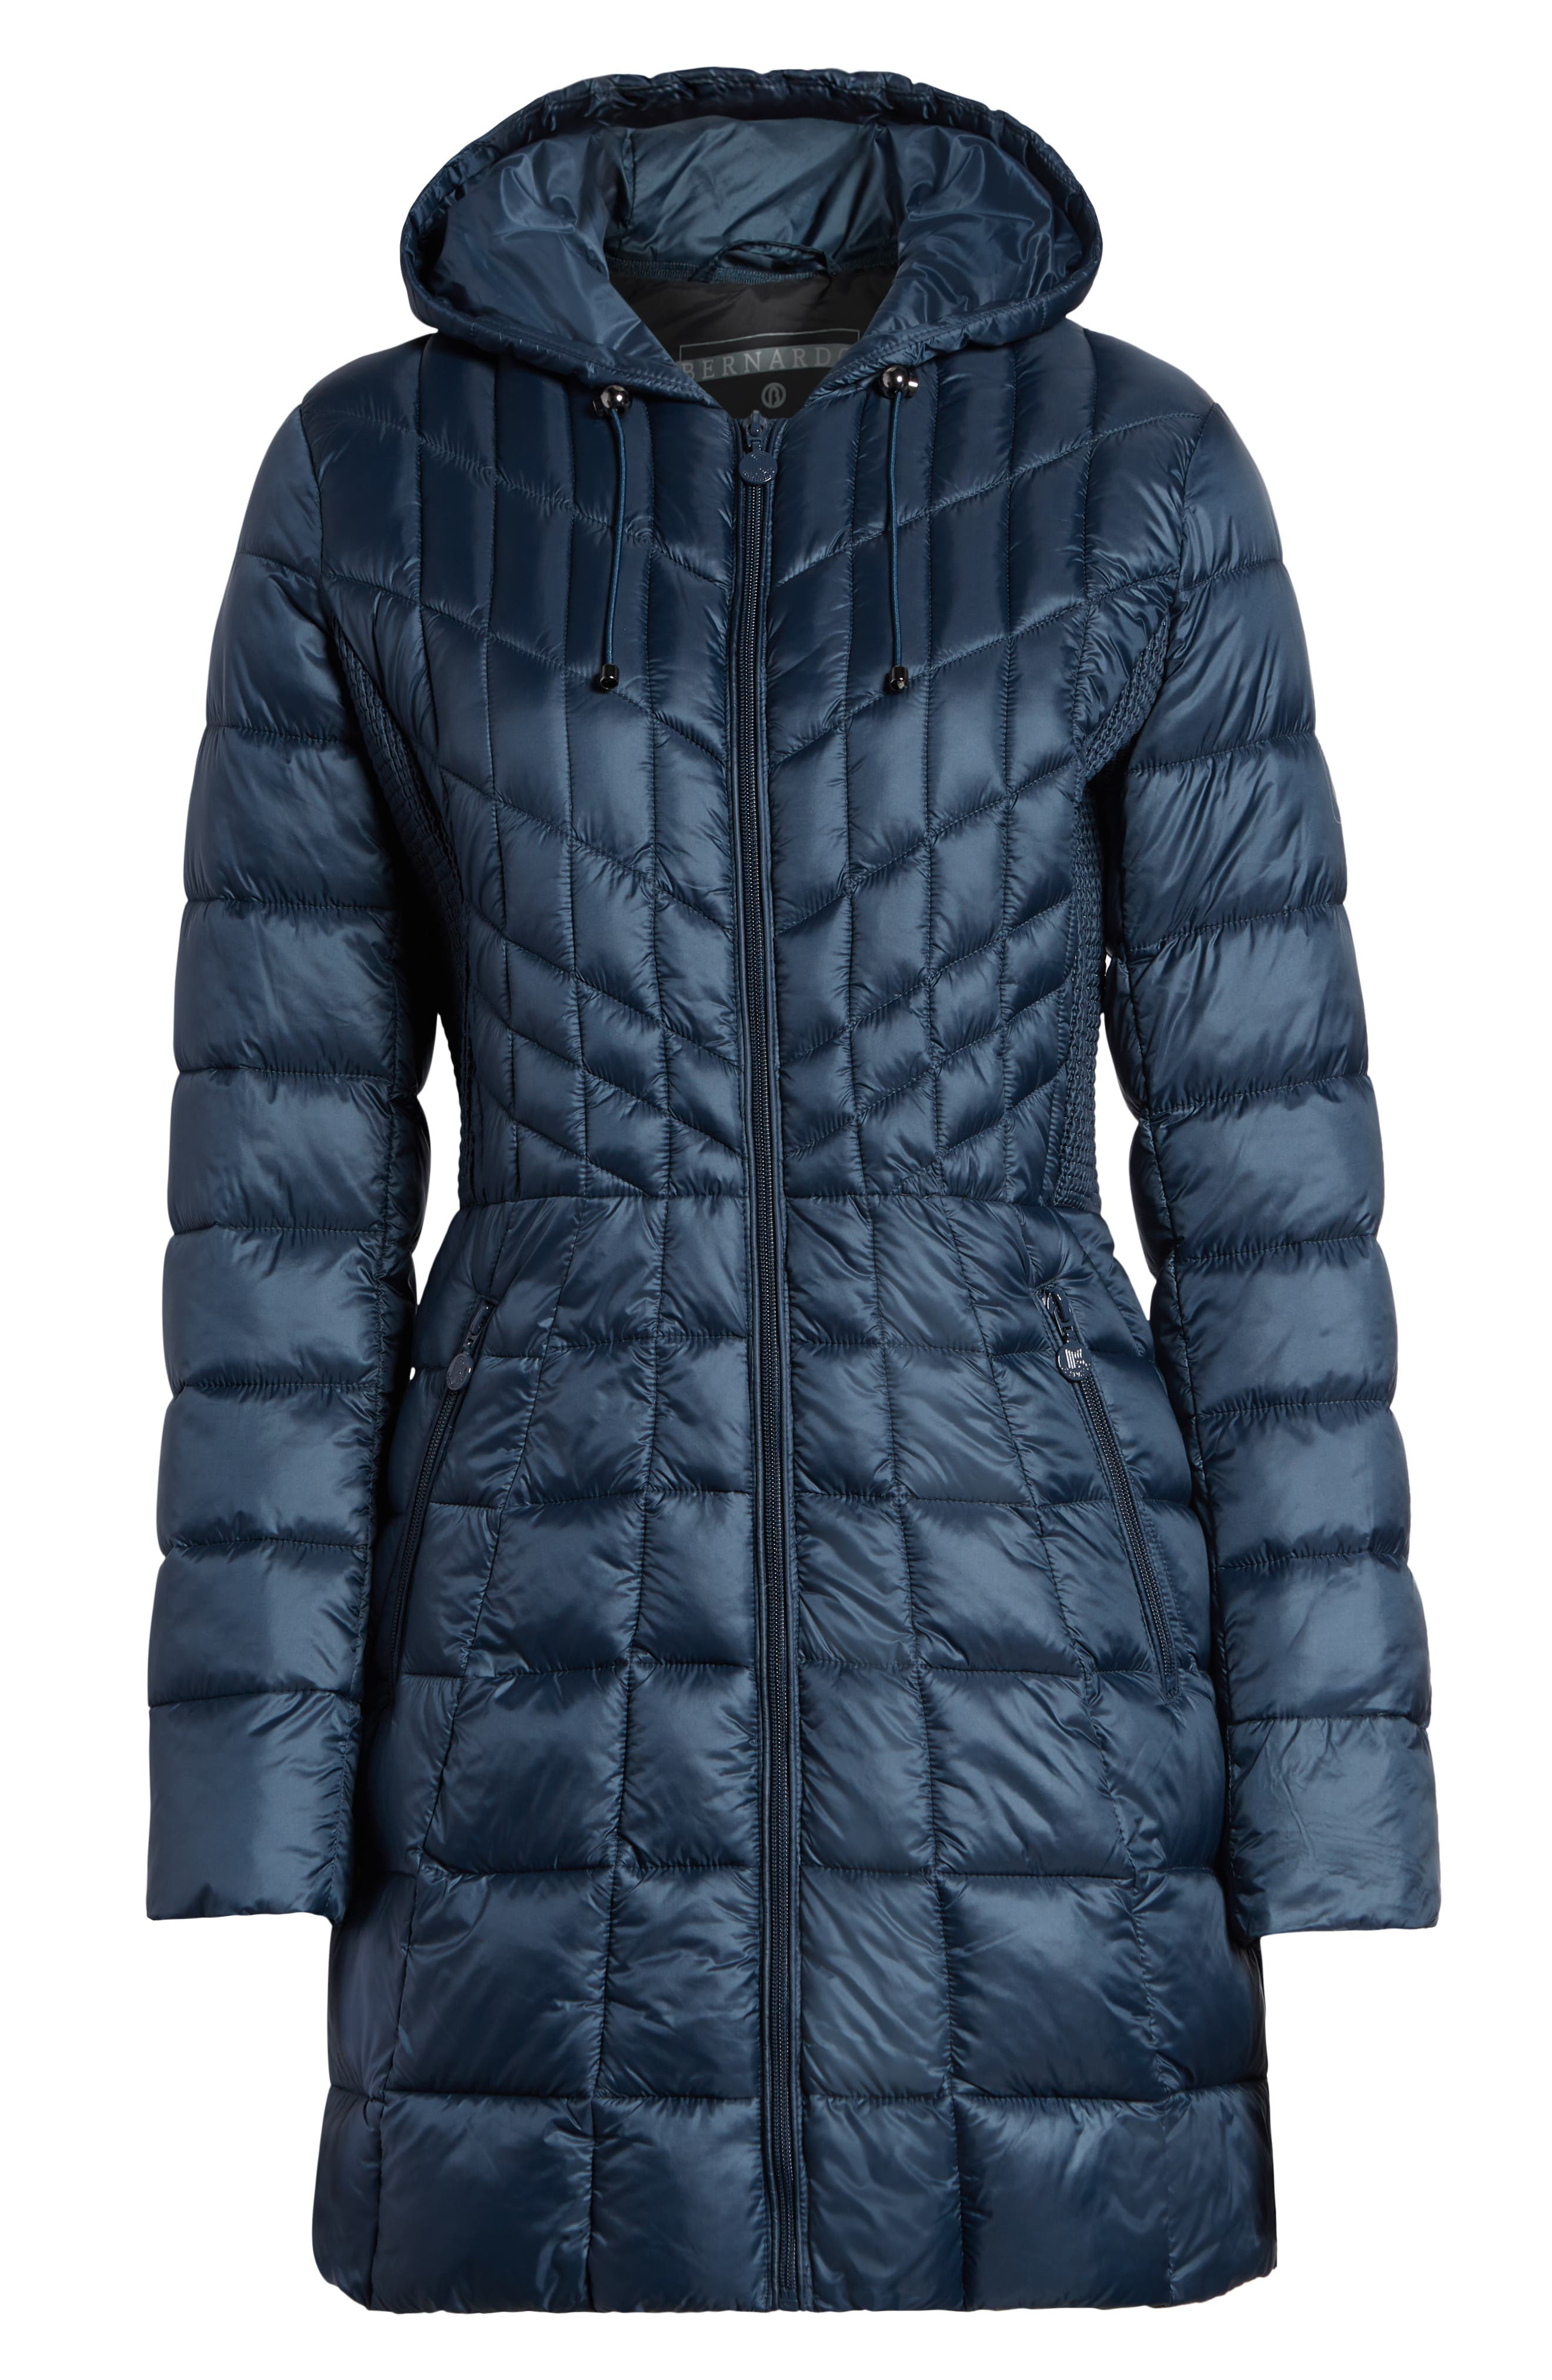 Packable Hooded PrimaLoft<sup>®</sup> Fill Coat with Contrast Inset Bib,                             Alternate thumbnail 7, color,                             300